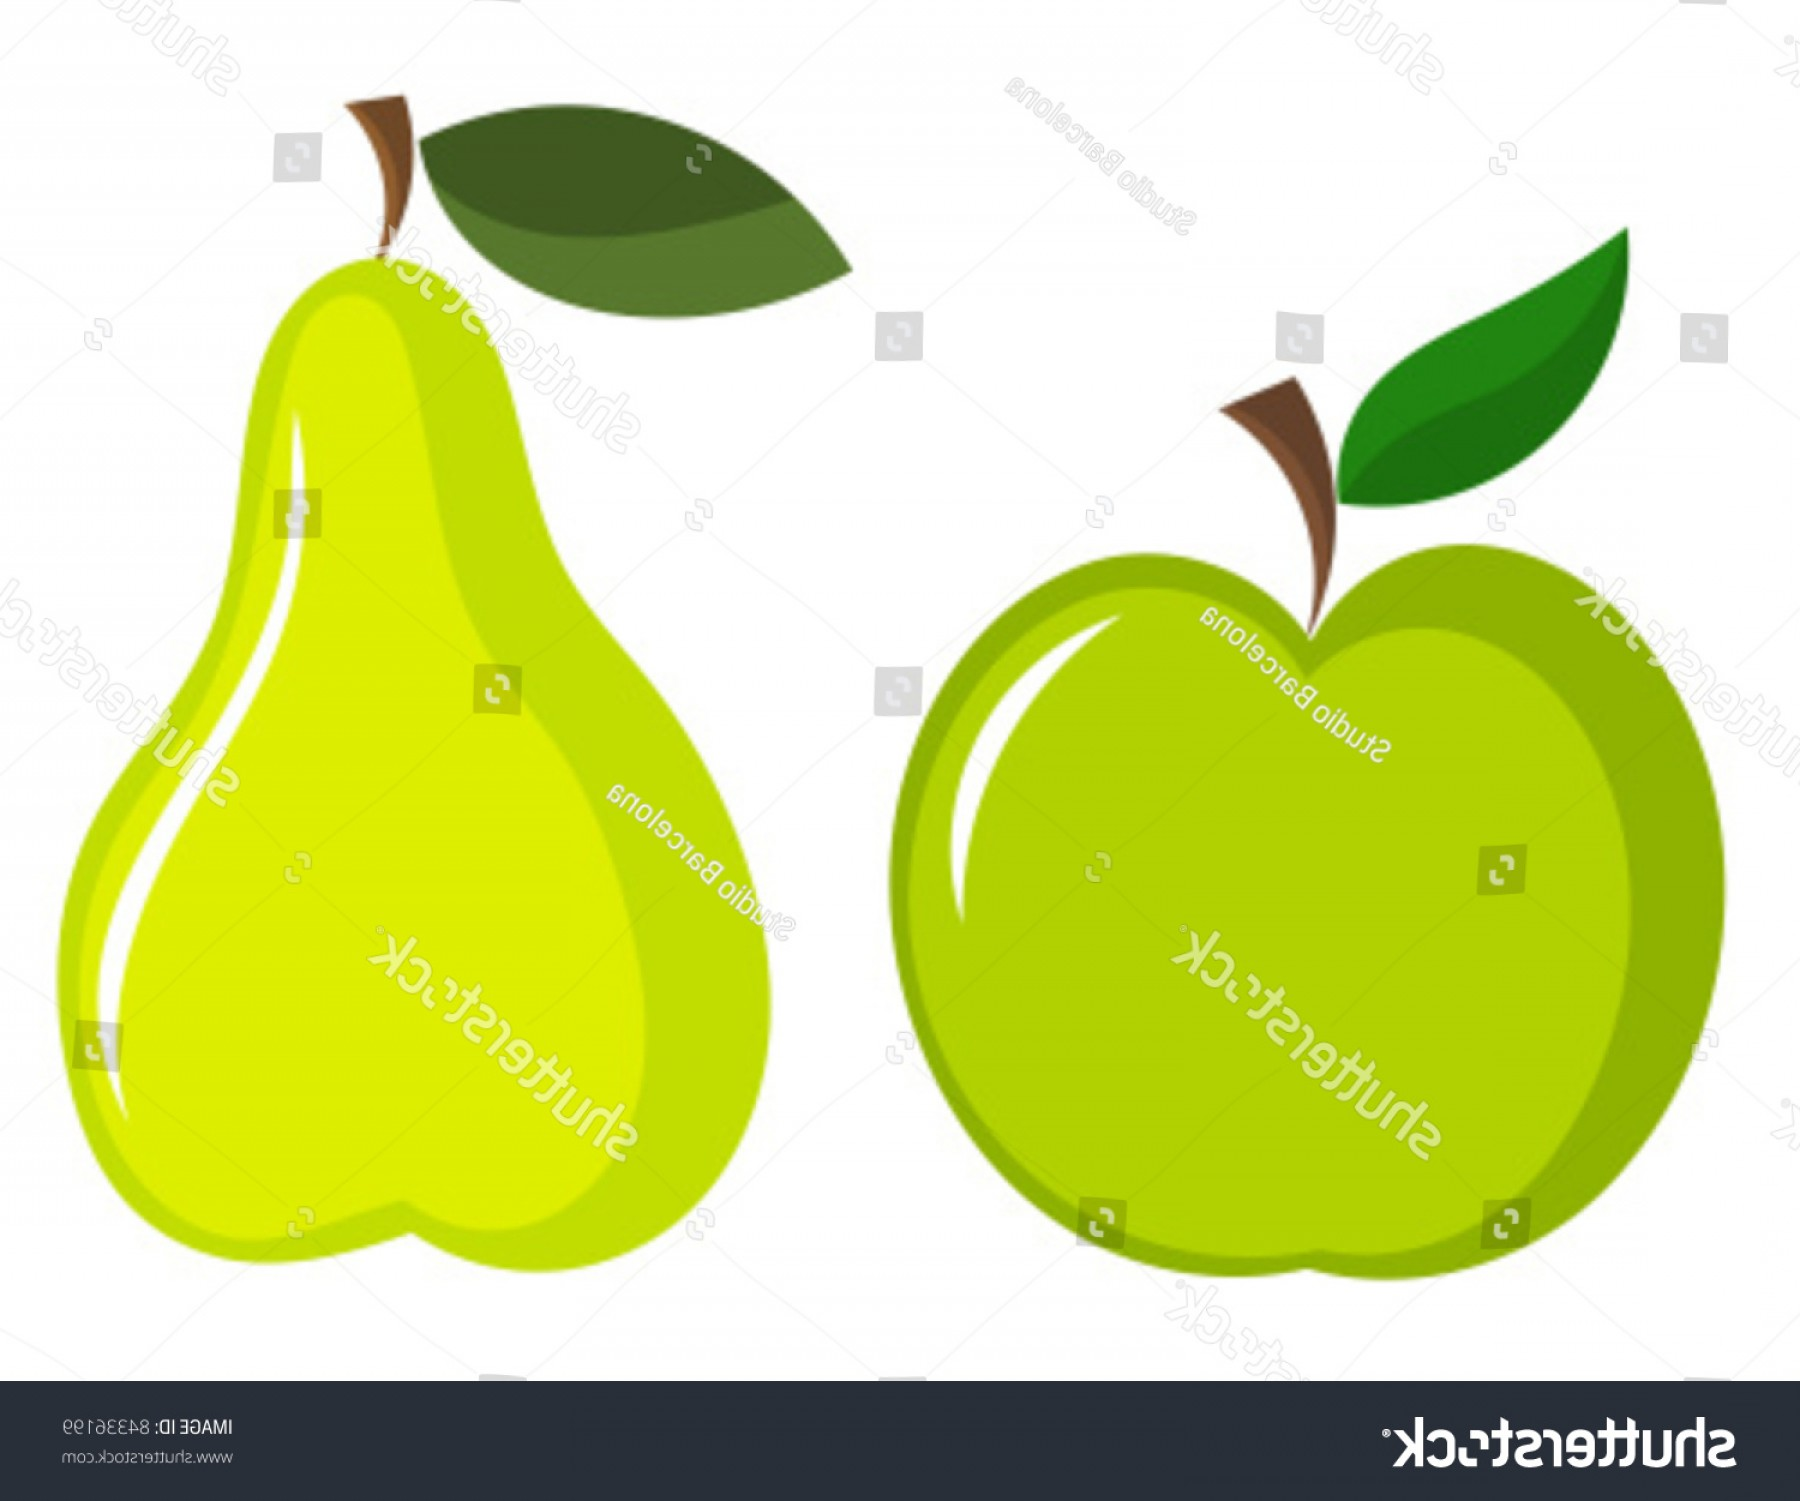 Pear Vector Shutterstock: Green Apple Pear Vector Icons